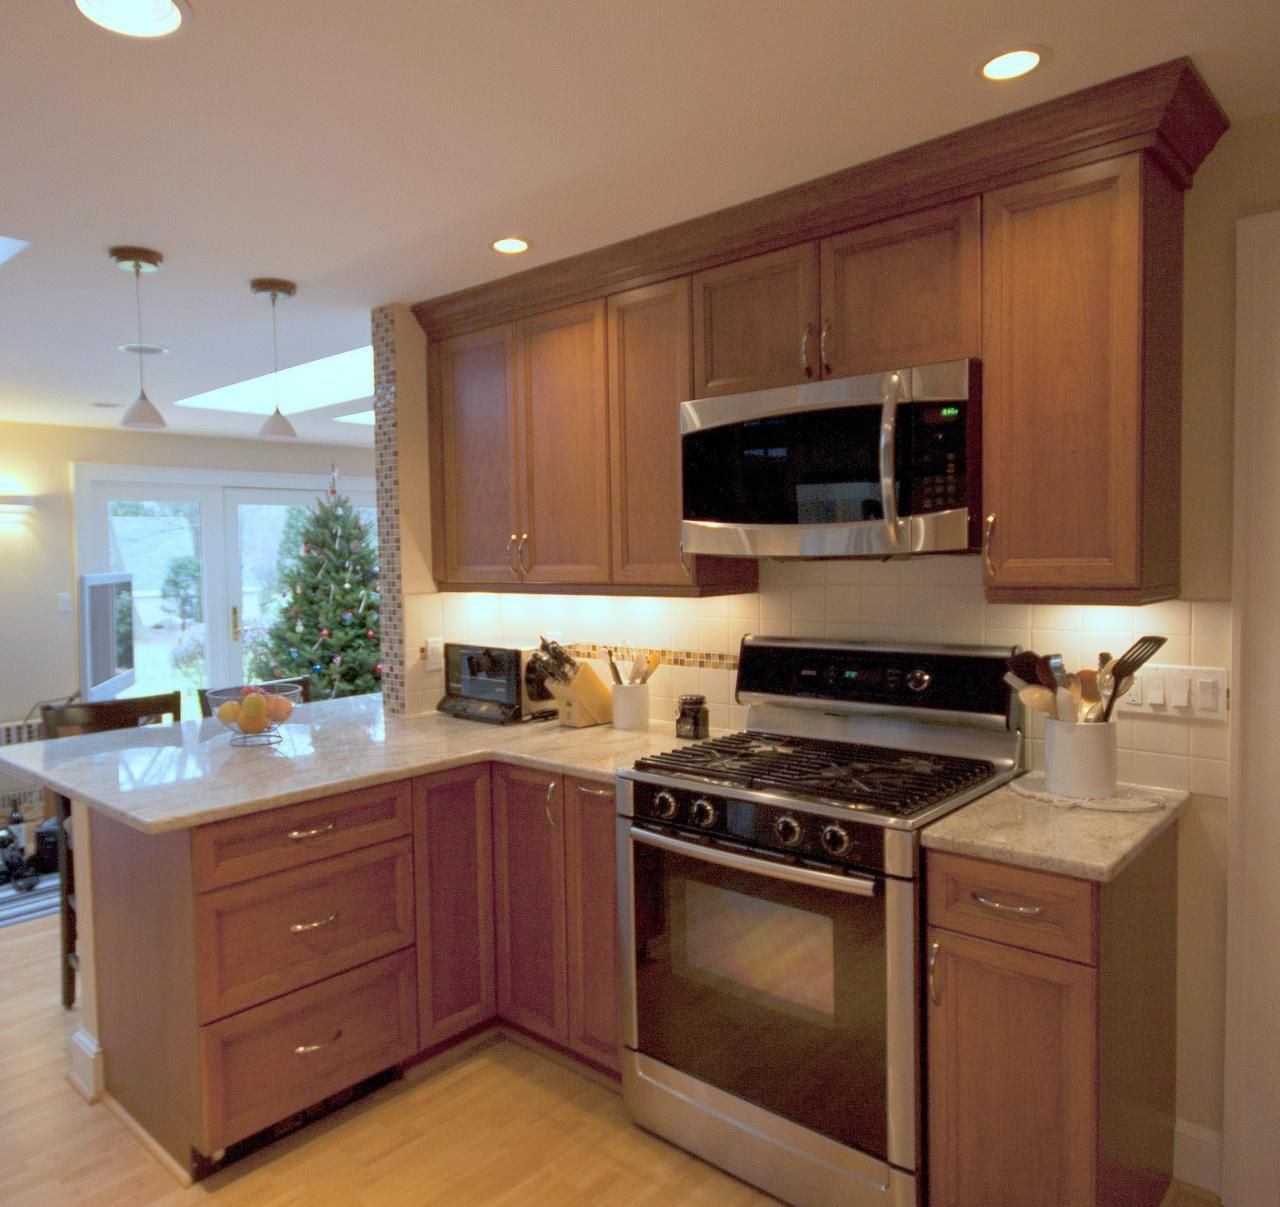 Traditional Cherry Kitchen With Peninsula Corner Cabinet And Drawers Perfect Choices Kitchen Kitchen Remodel Kitchen Peninsula